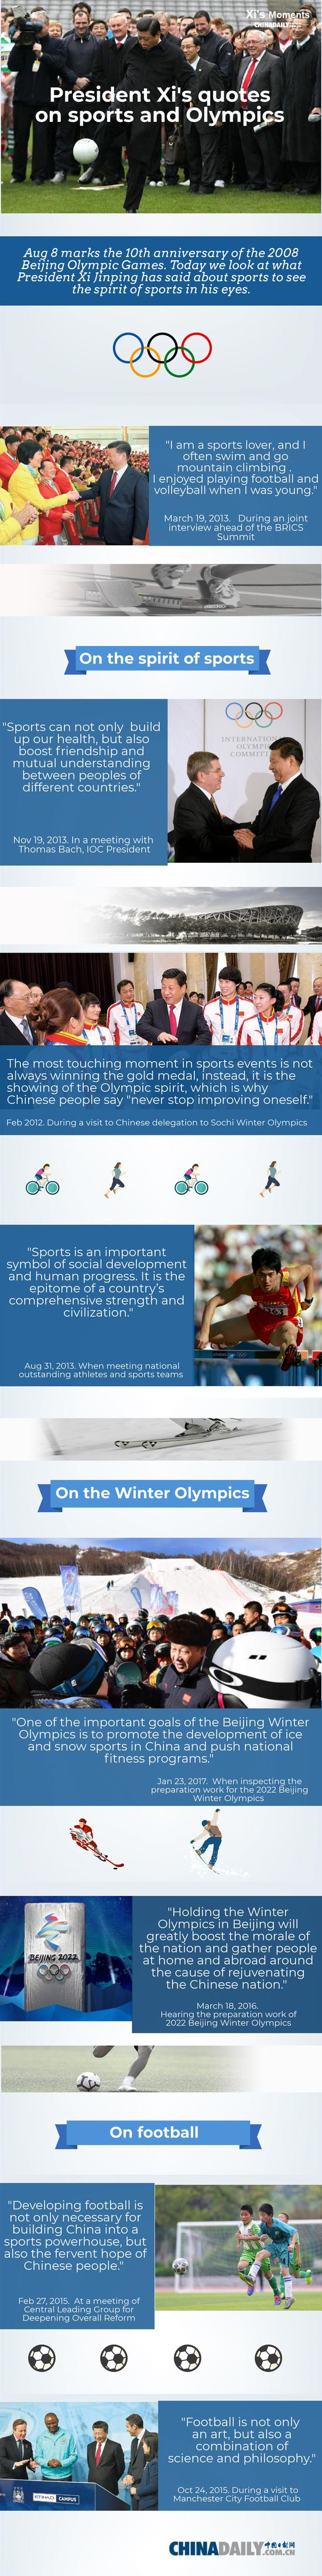 President Xi's quotes on sports